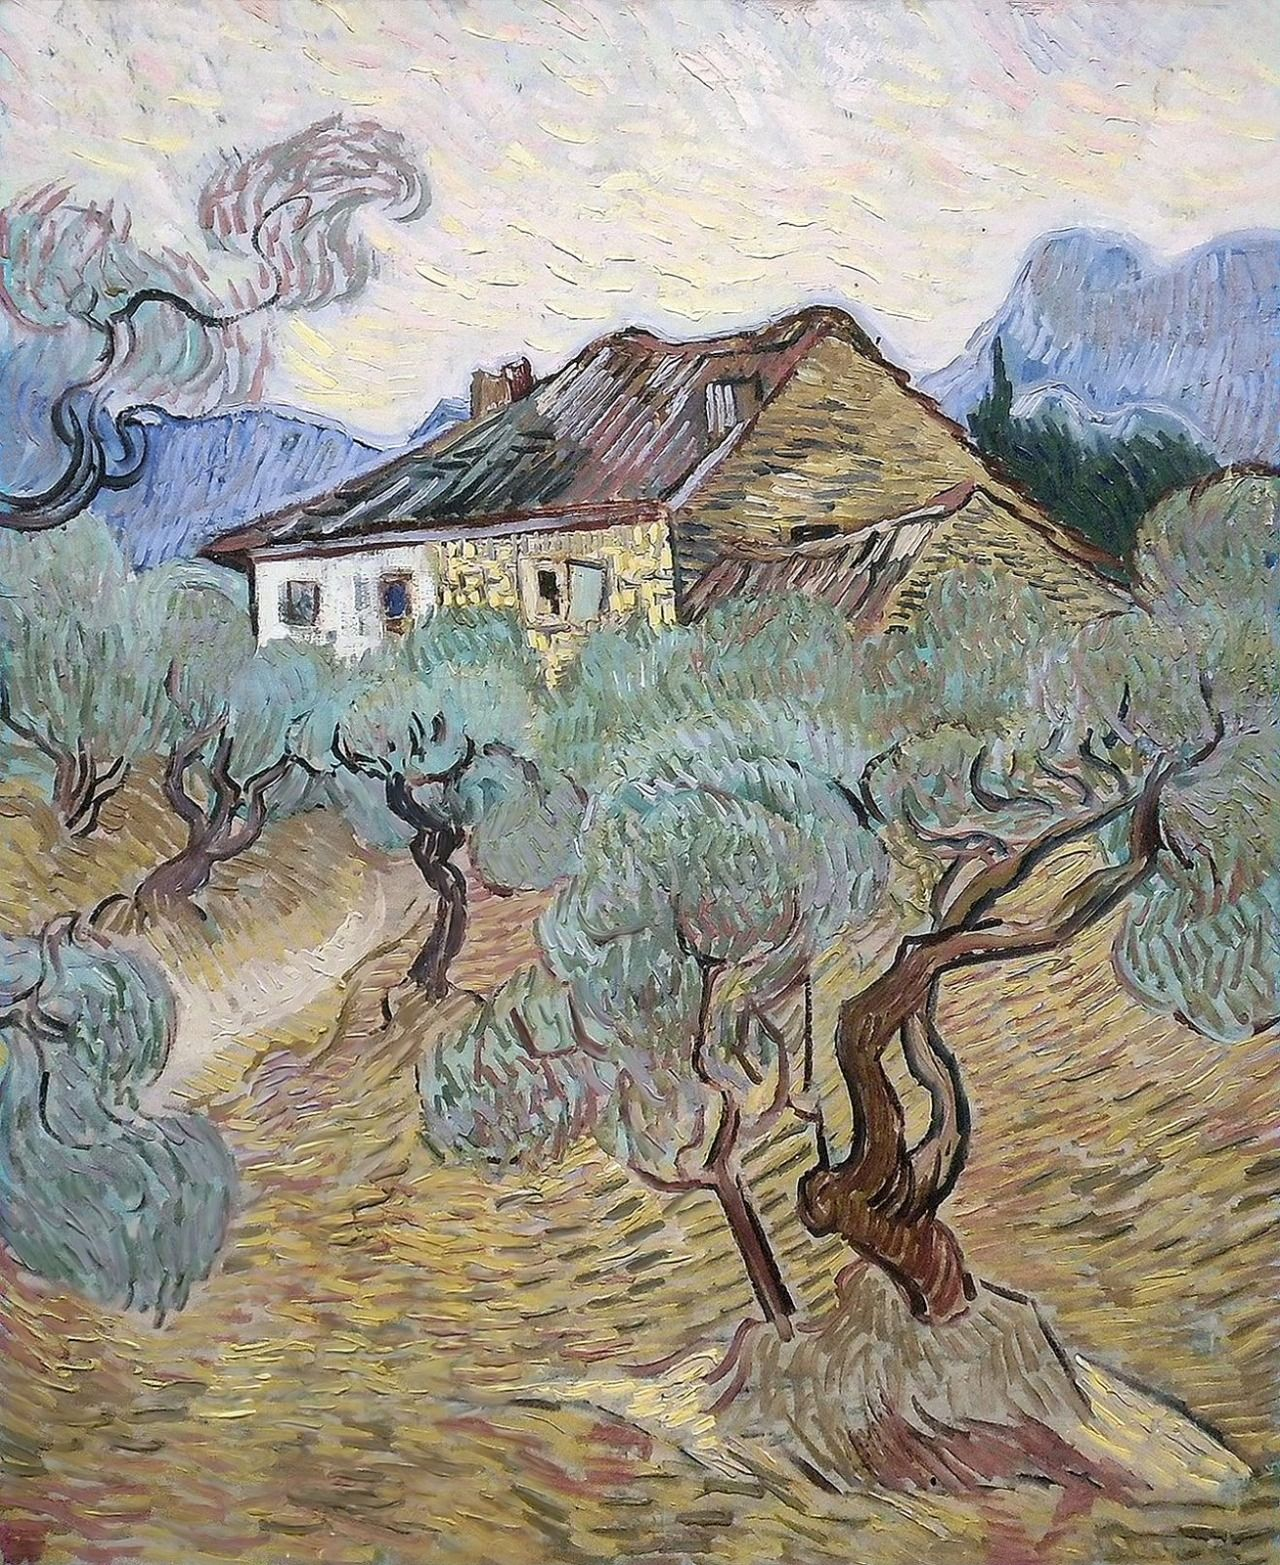 On the canvas of Van Gogh found a grasshopper who died 128 years ago